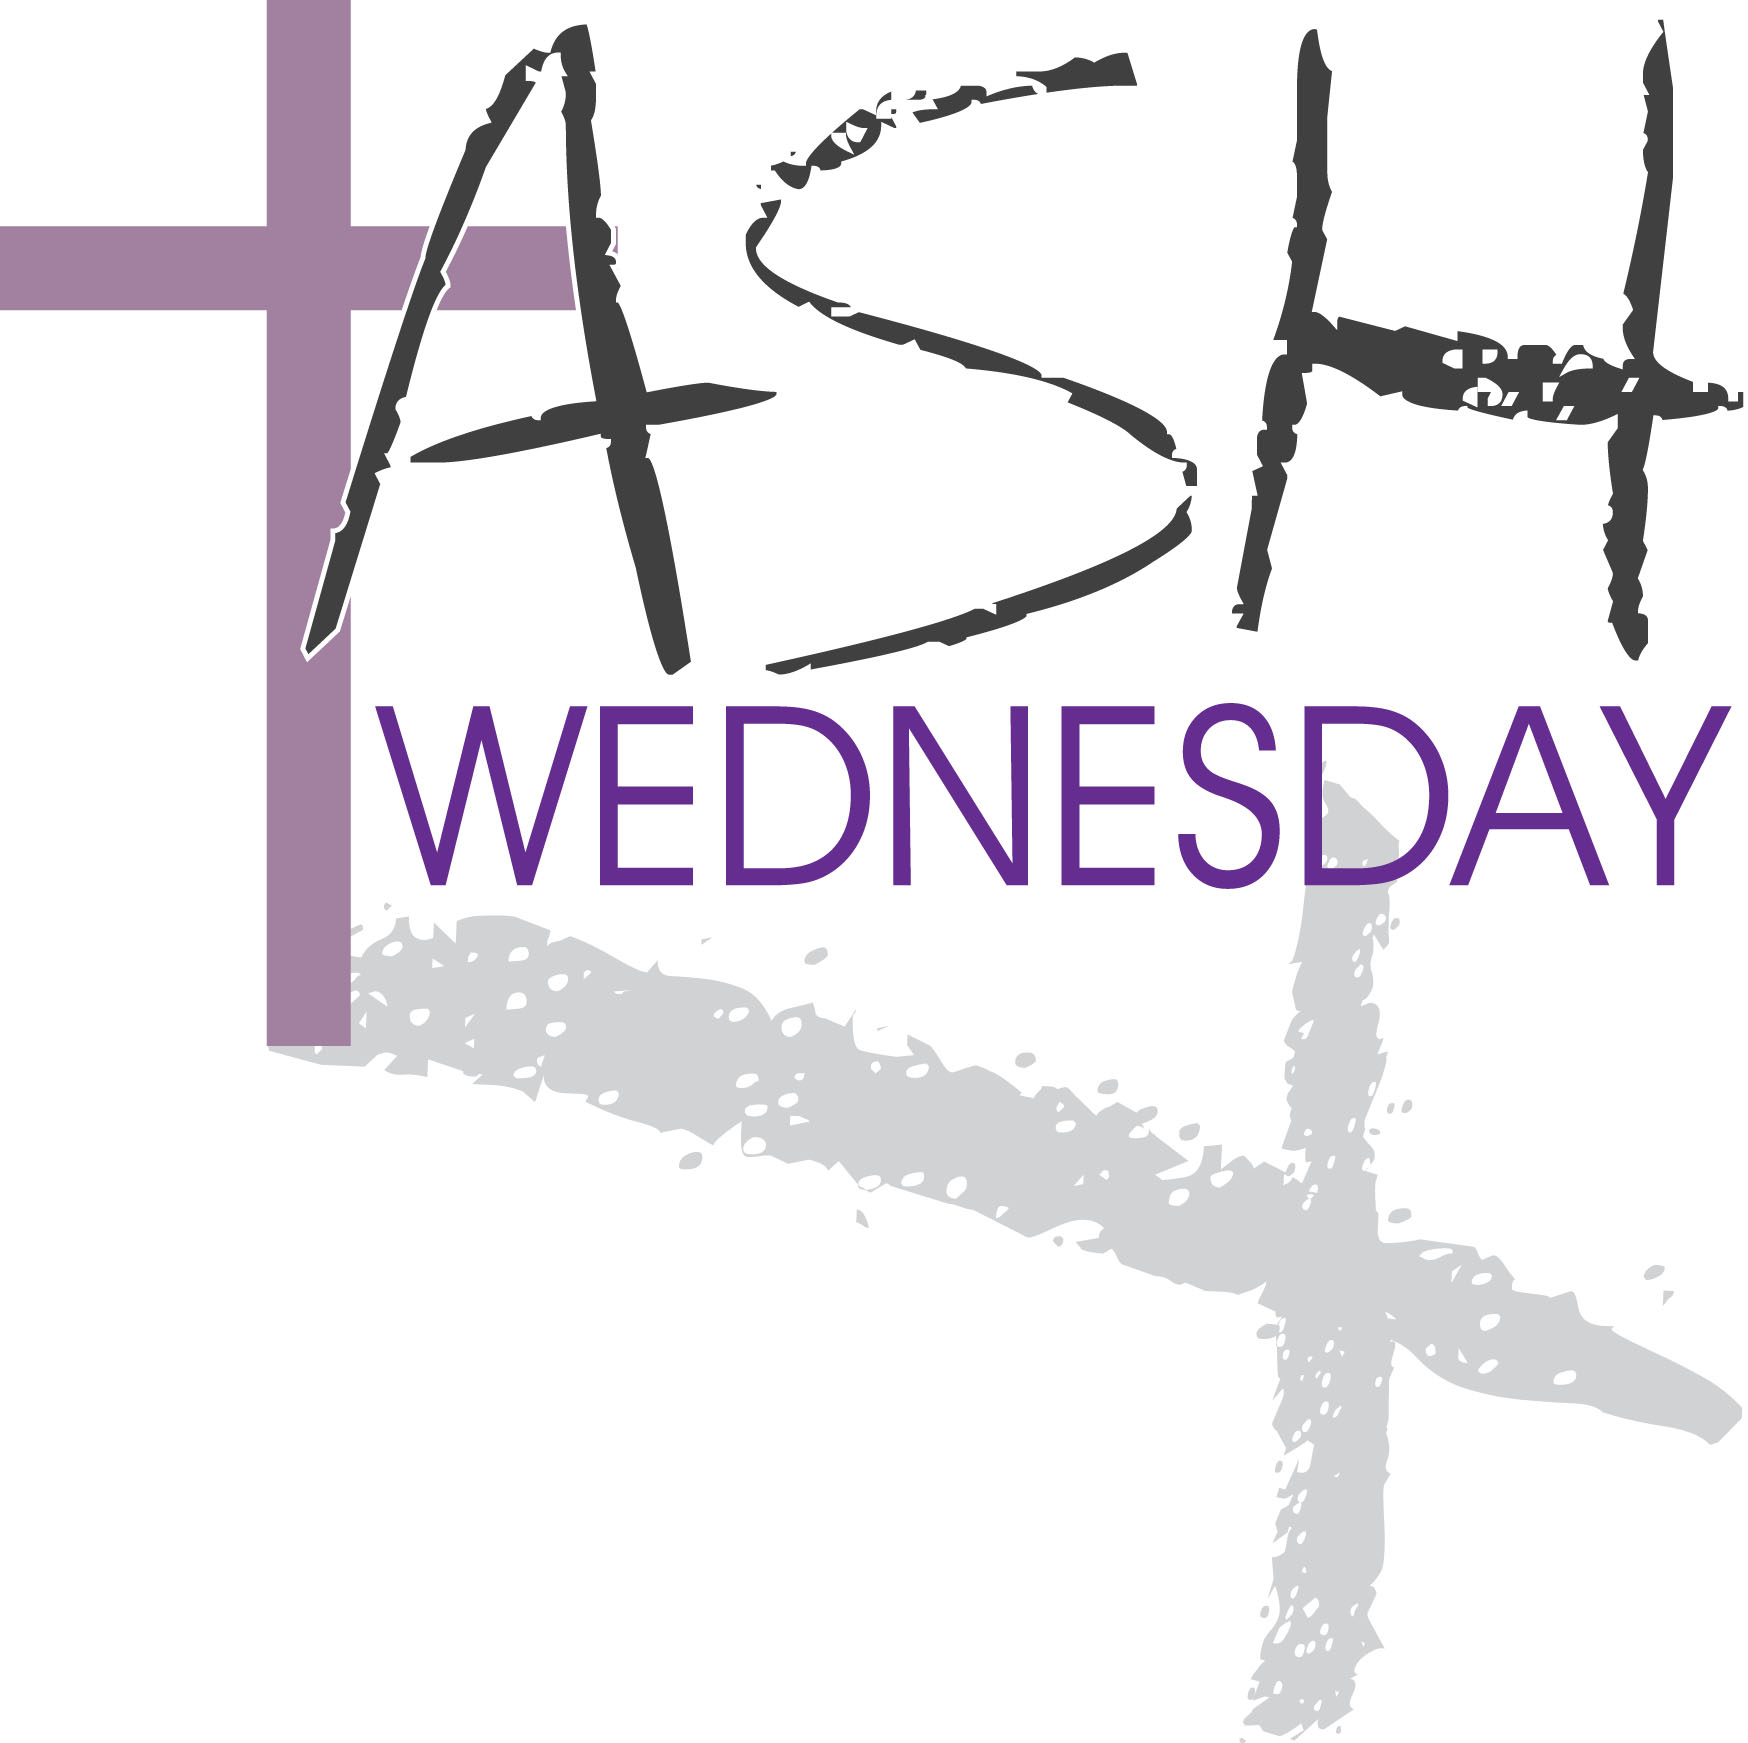 Free Ashes Cliparts, Download Free Clip Art, Free Clip Art.